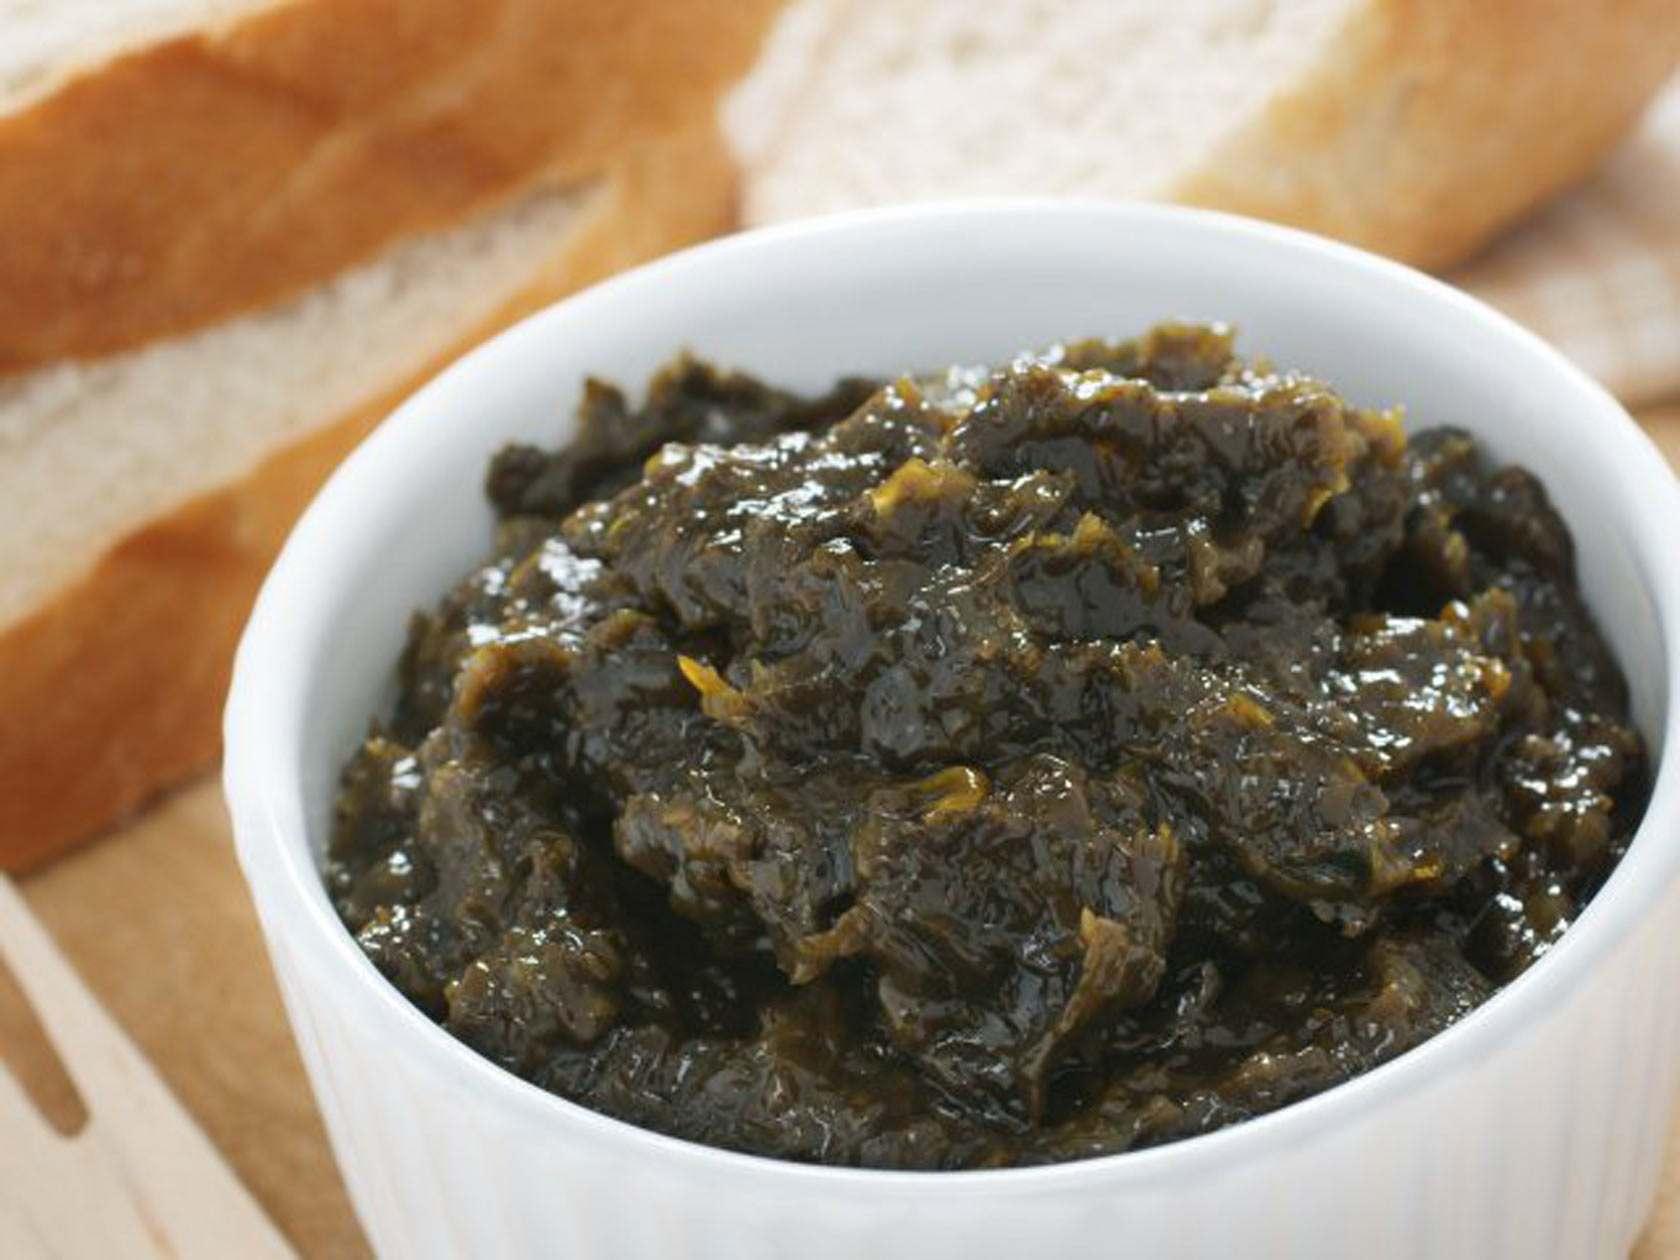 Buy Frozen Laver & Seaweed Online   Laverbread   The Fish Society